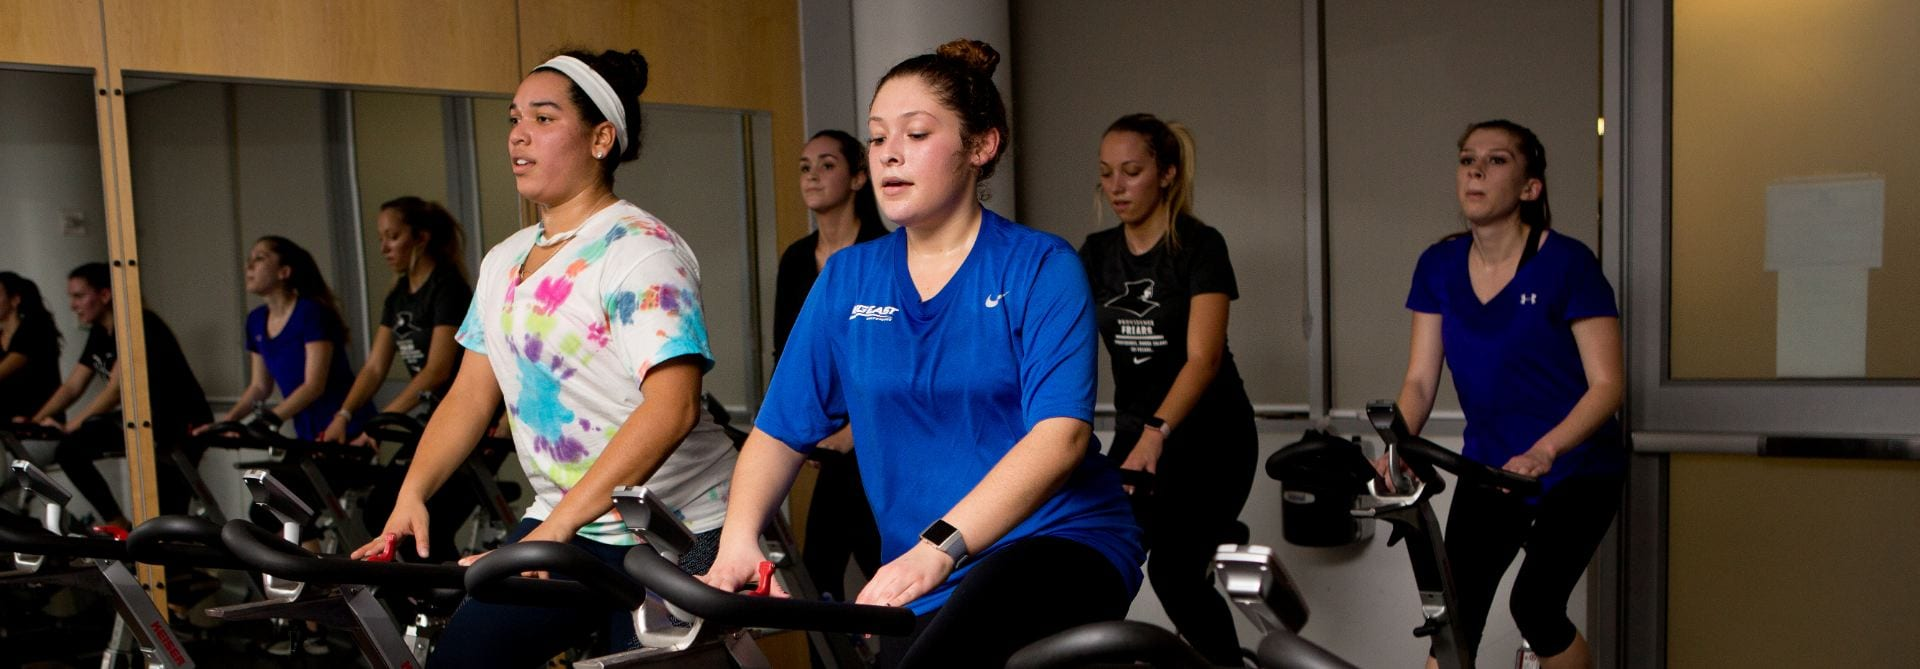 students on bikes at spin class